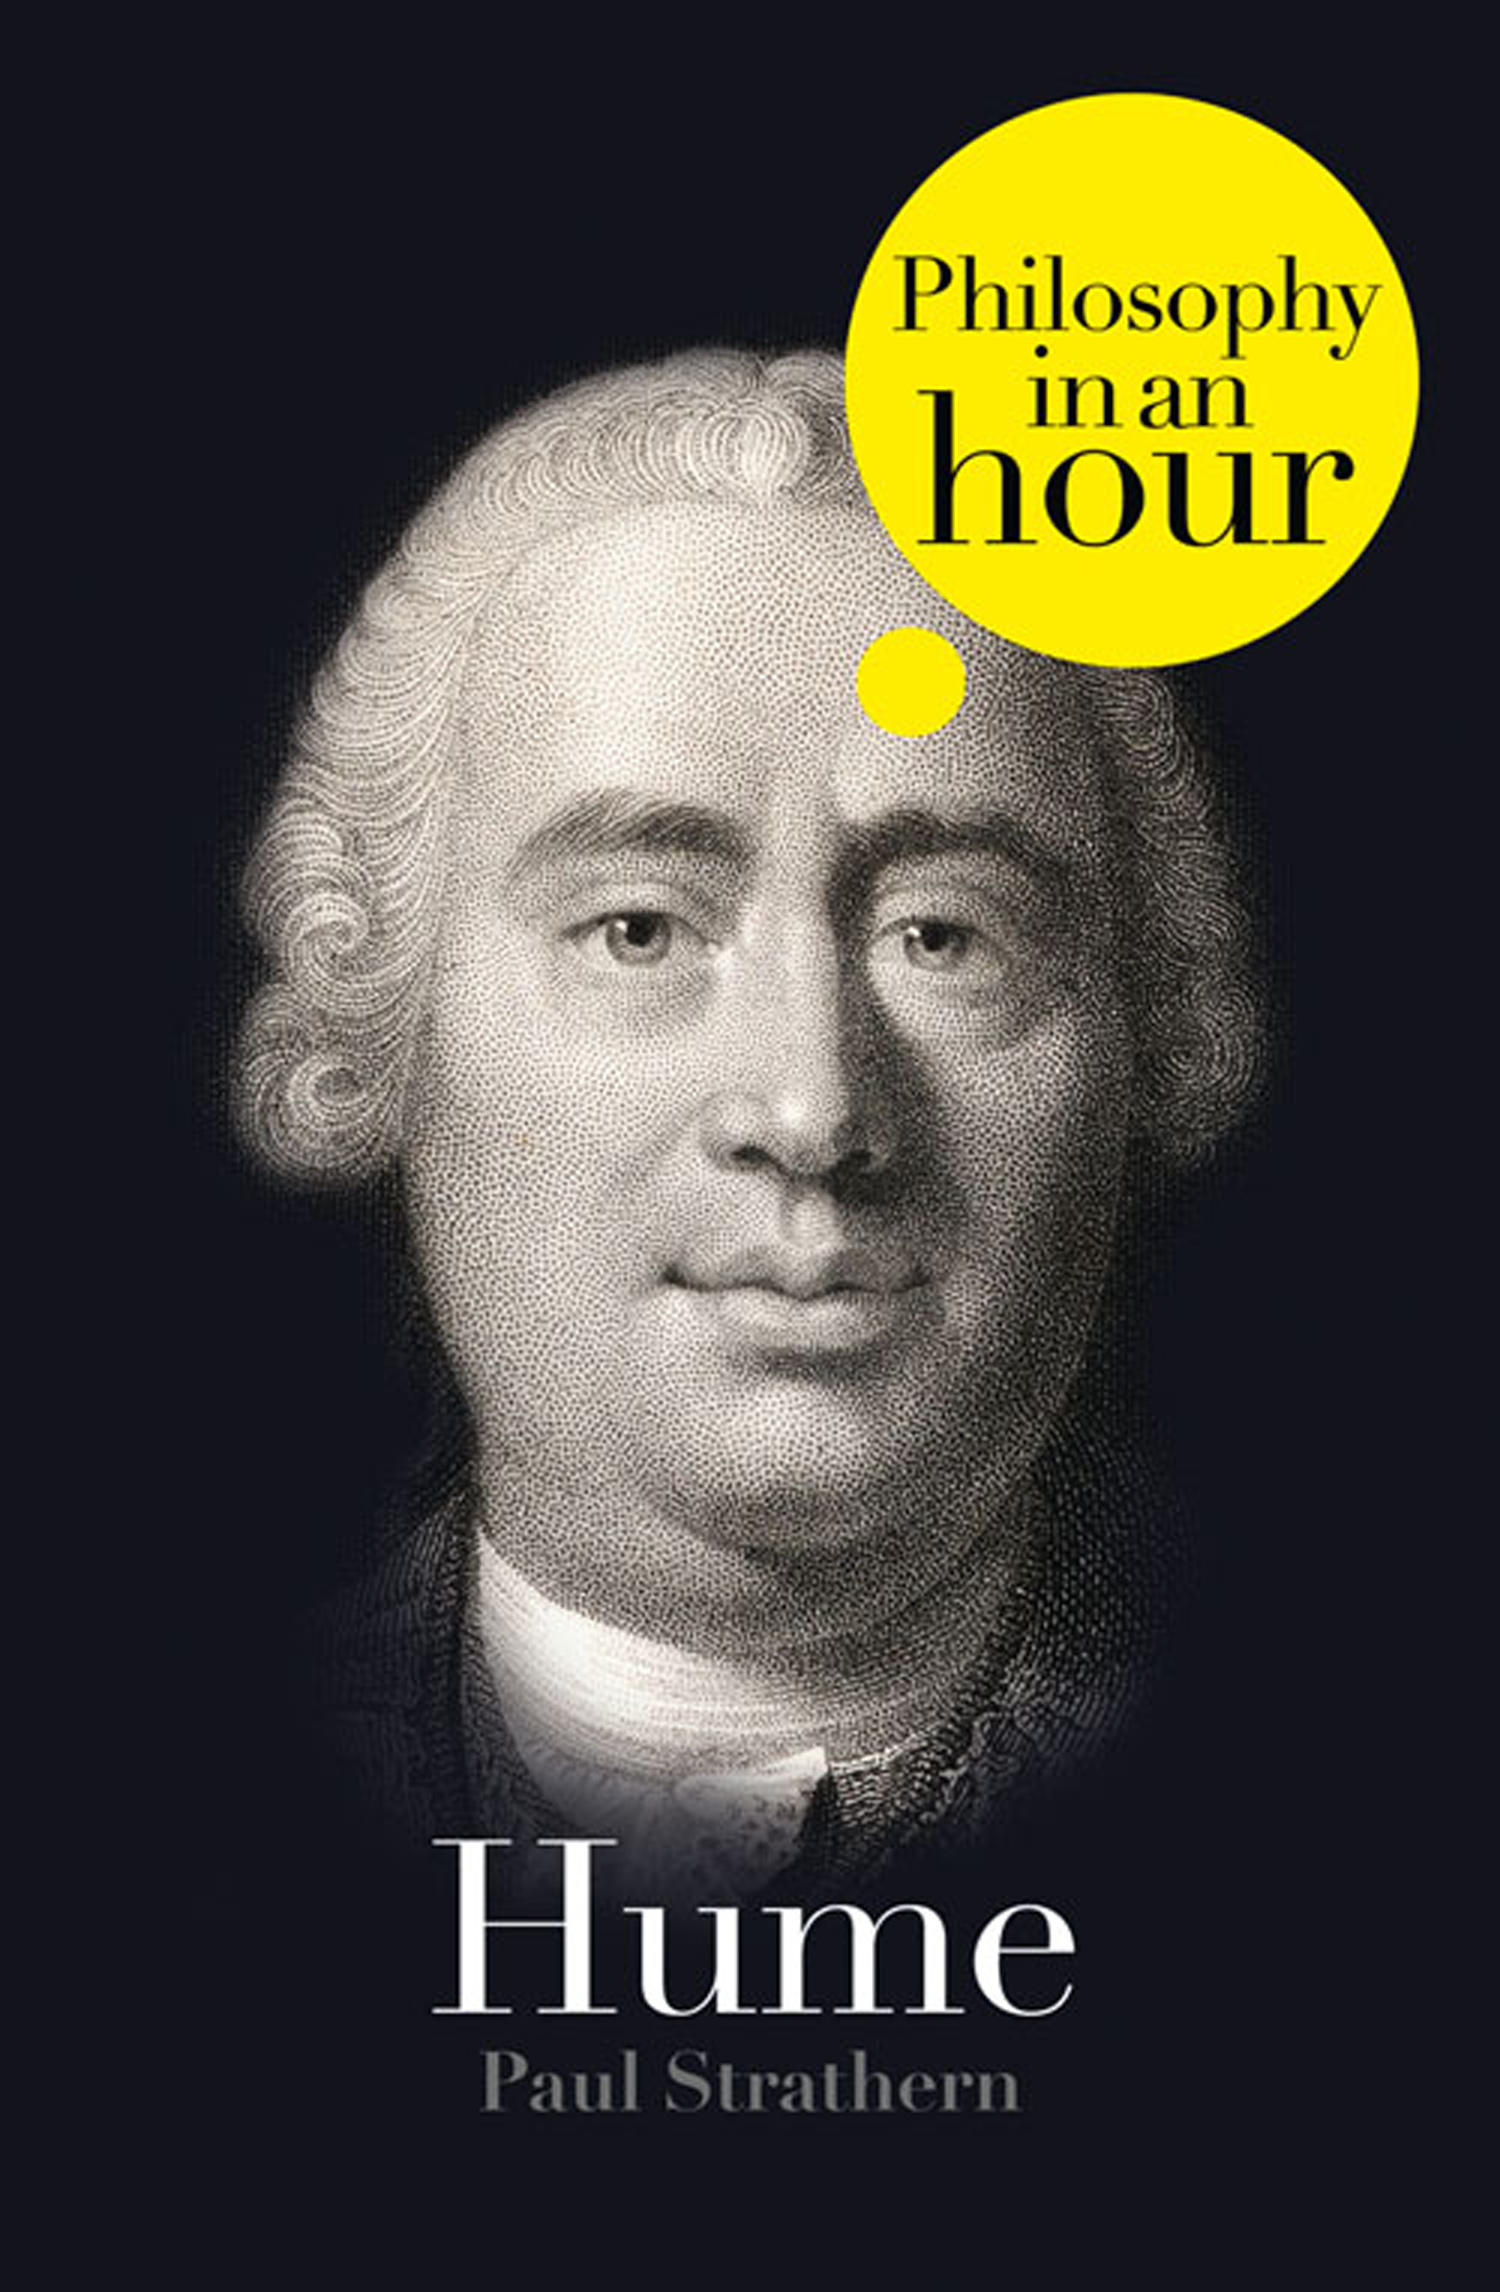 Hume: Philosophy in an Hour